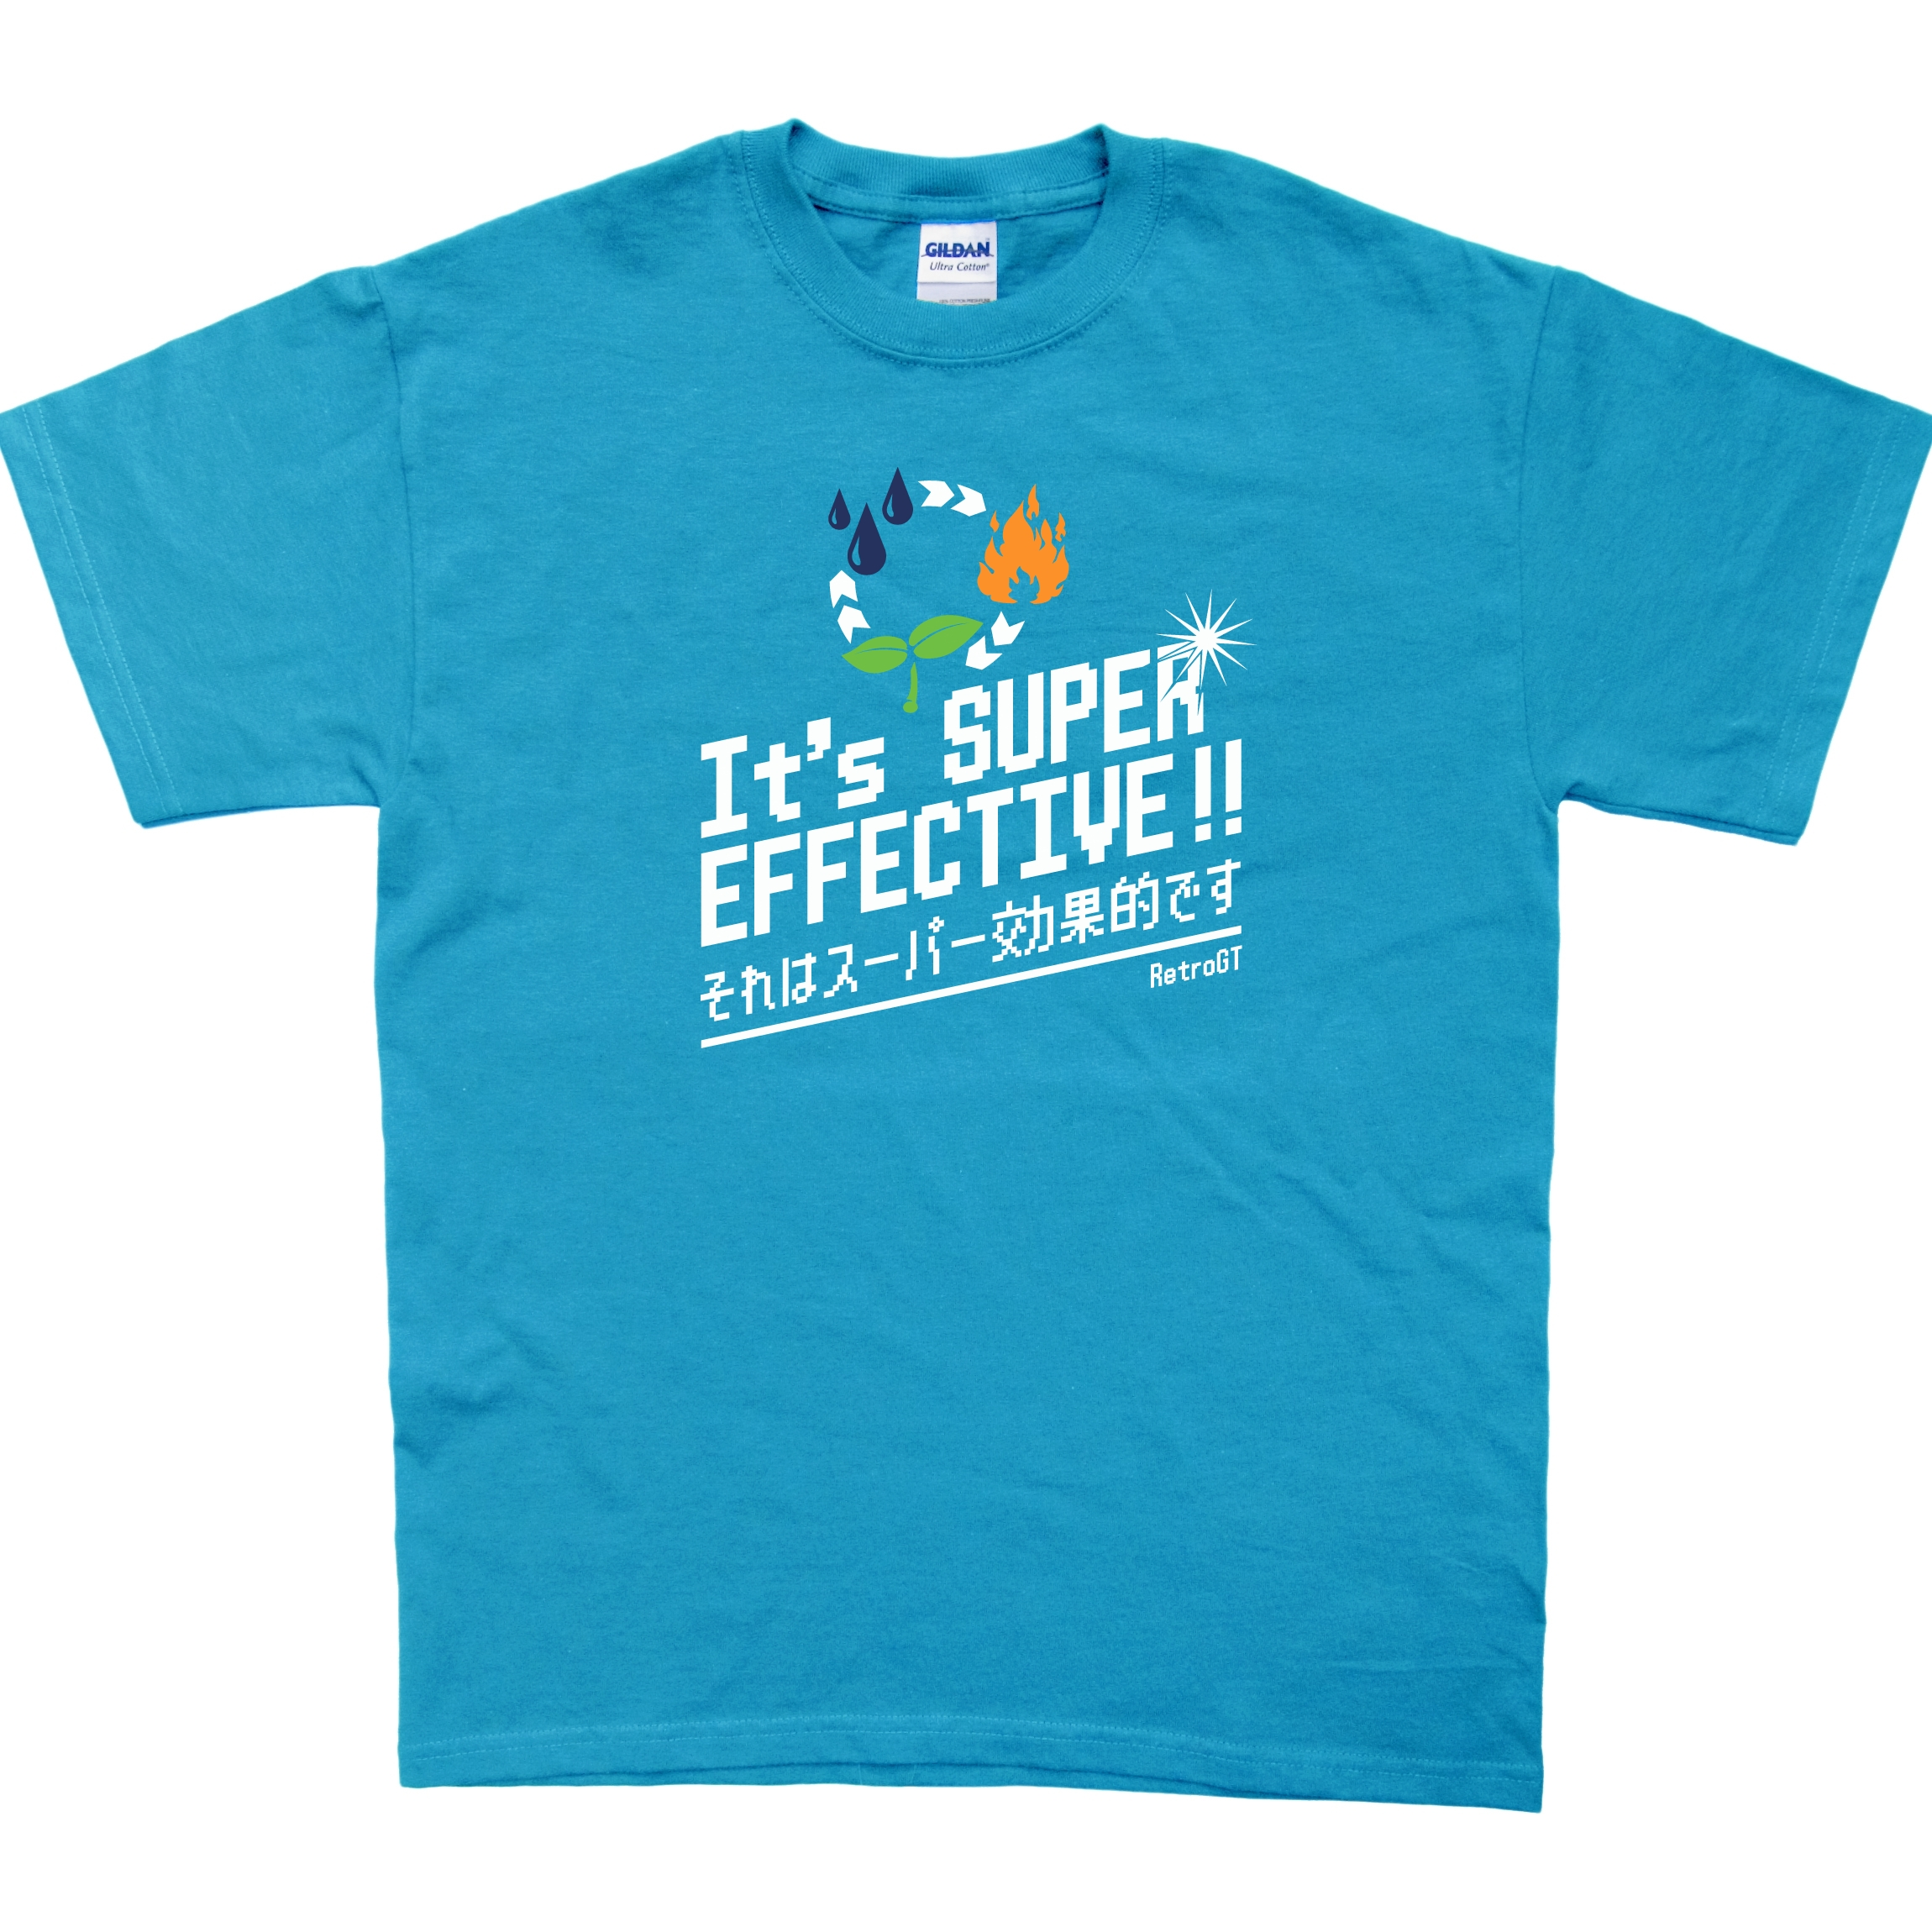 Photograph: It's Super Effective! T-Shirt